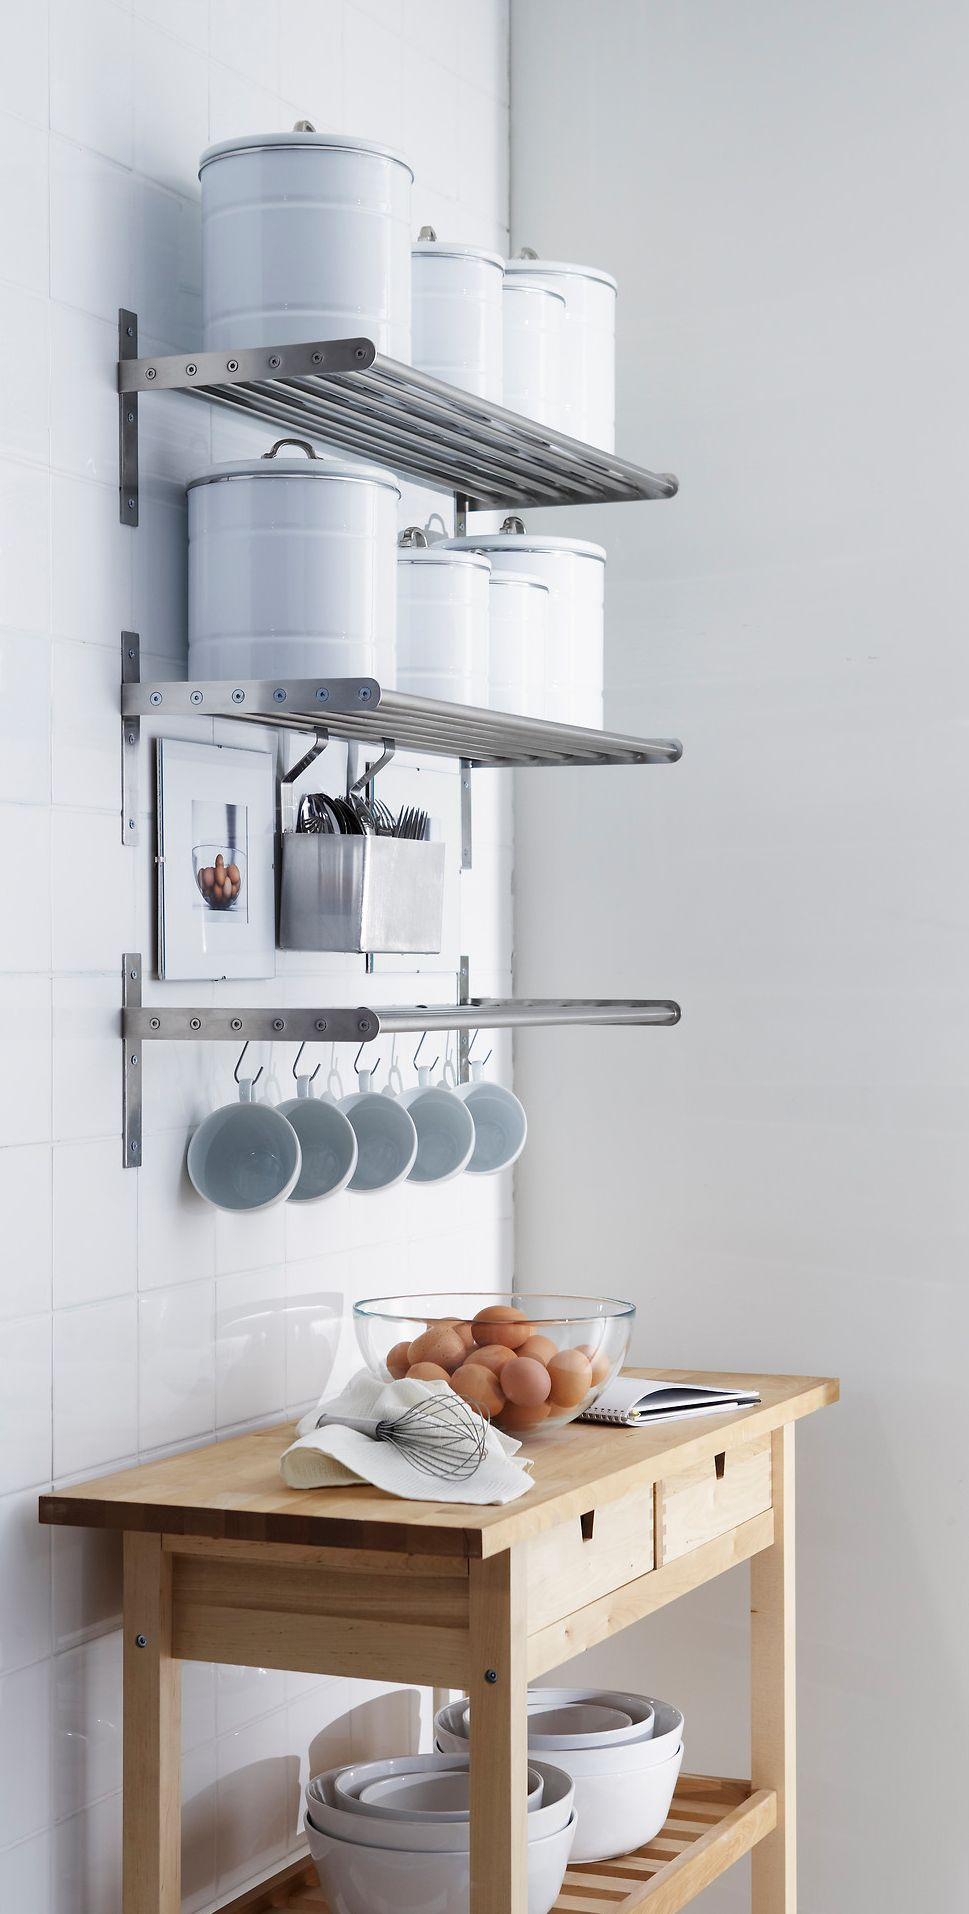 65 ingenious kitchen organization tips and storage ideas Towel storage ideas ikea